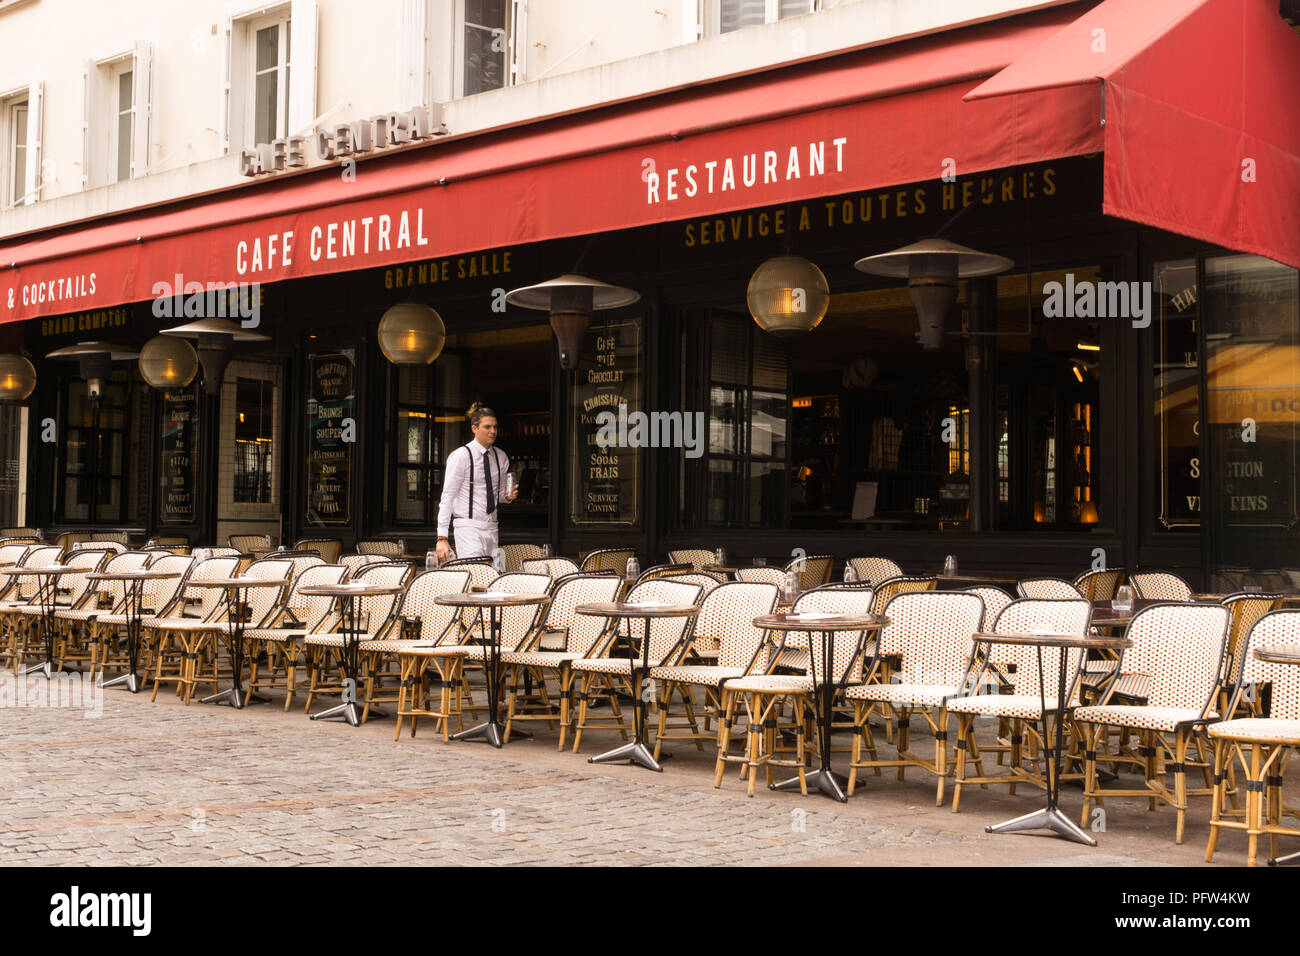 Waiter sets the tables at the Cafe Central restaurant on Rue Cler in Paris, France. - Stock Image